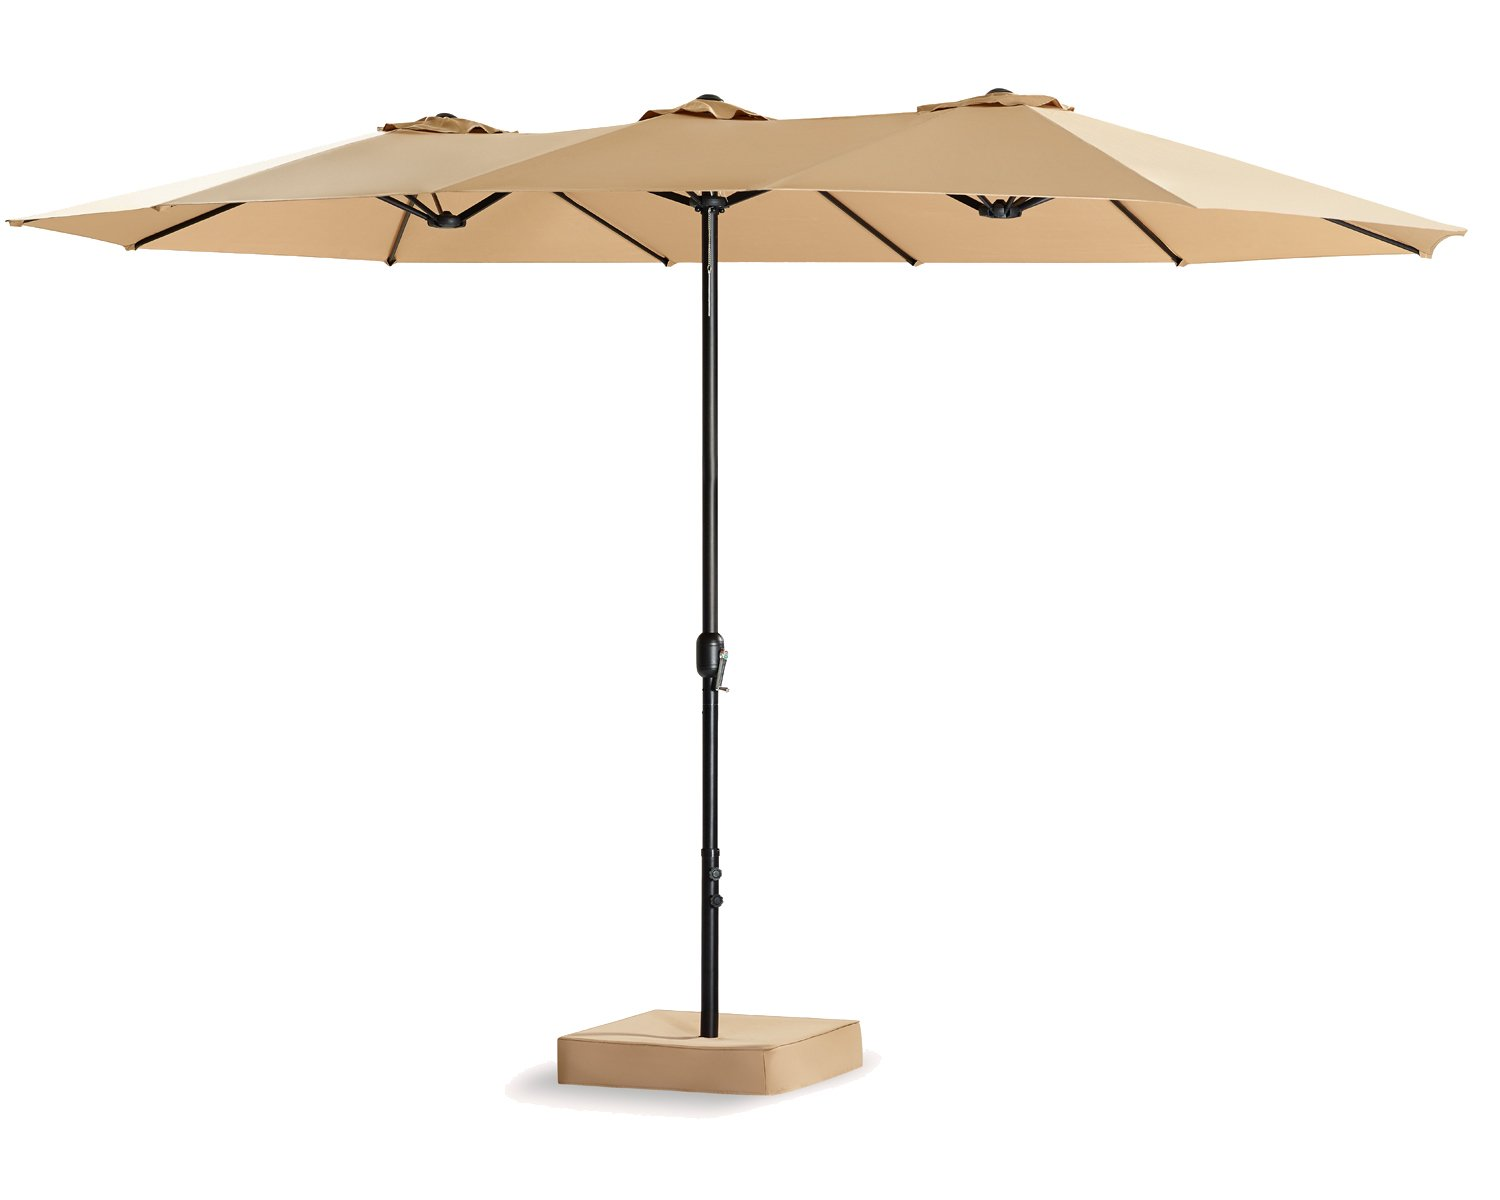 Patio Tree 15 Ft Double-Sided Outdoor Market Umbrella 12 Ribs, Crank System, 100% Polyester, Base Included (Beige)